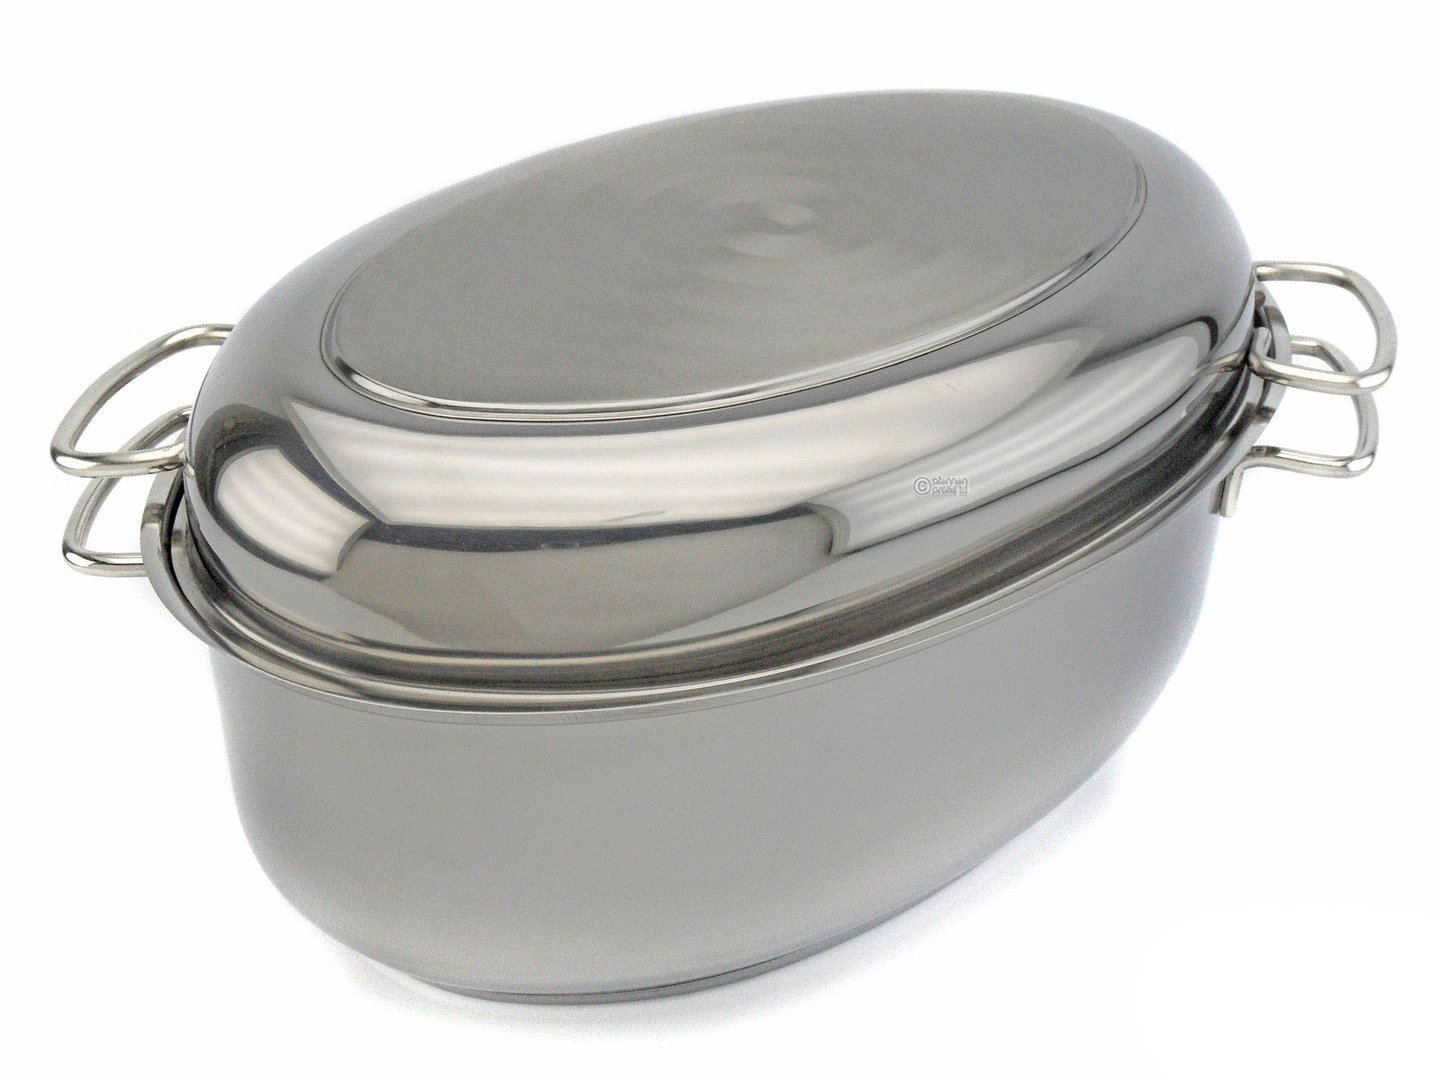 SSW oval roaster 38 cm 9 liter stainless steel with lid induction